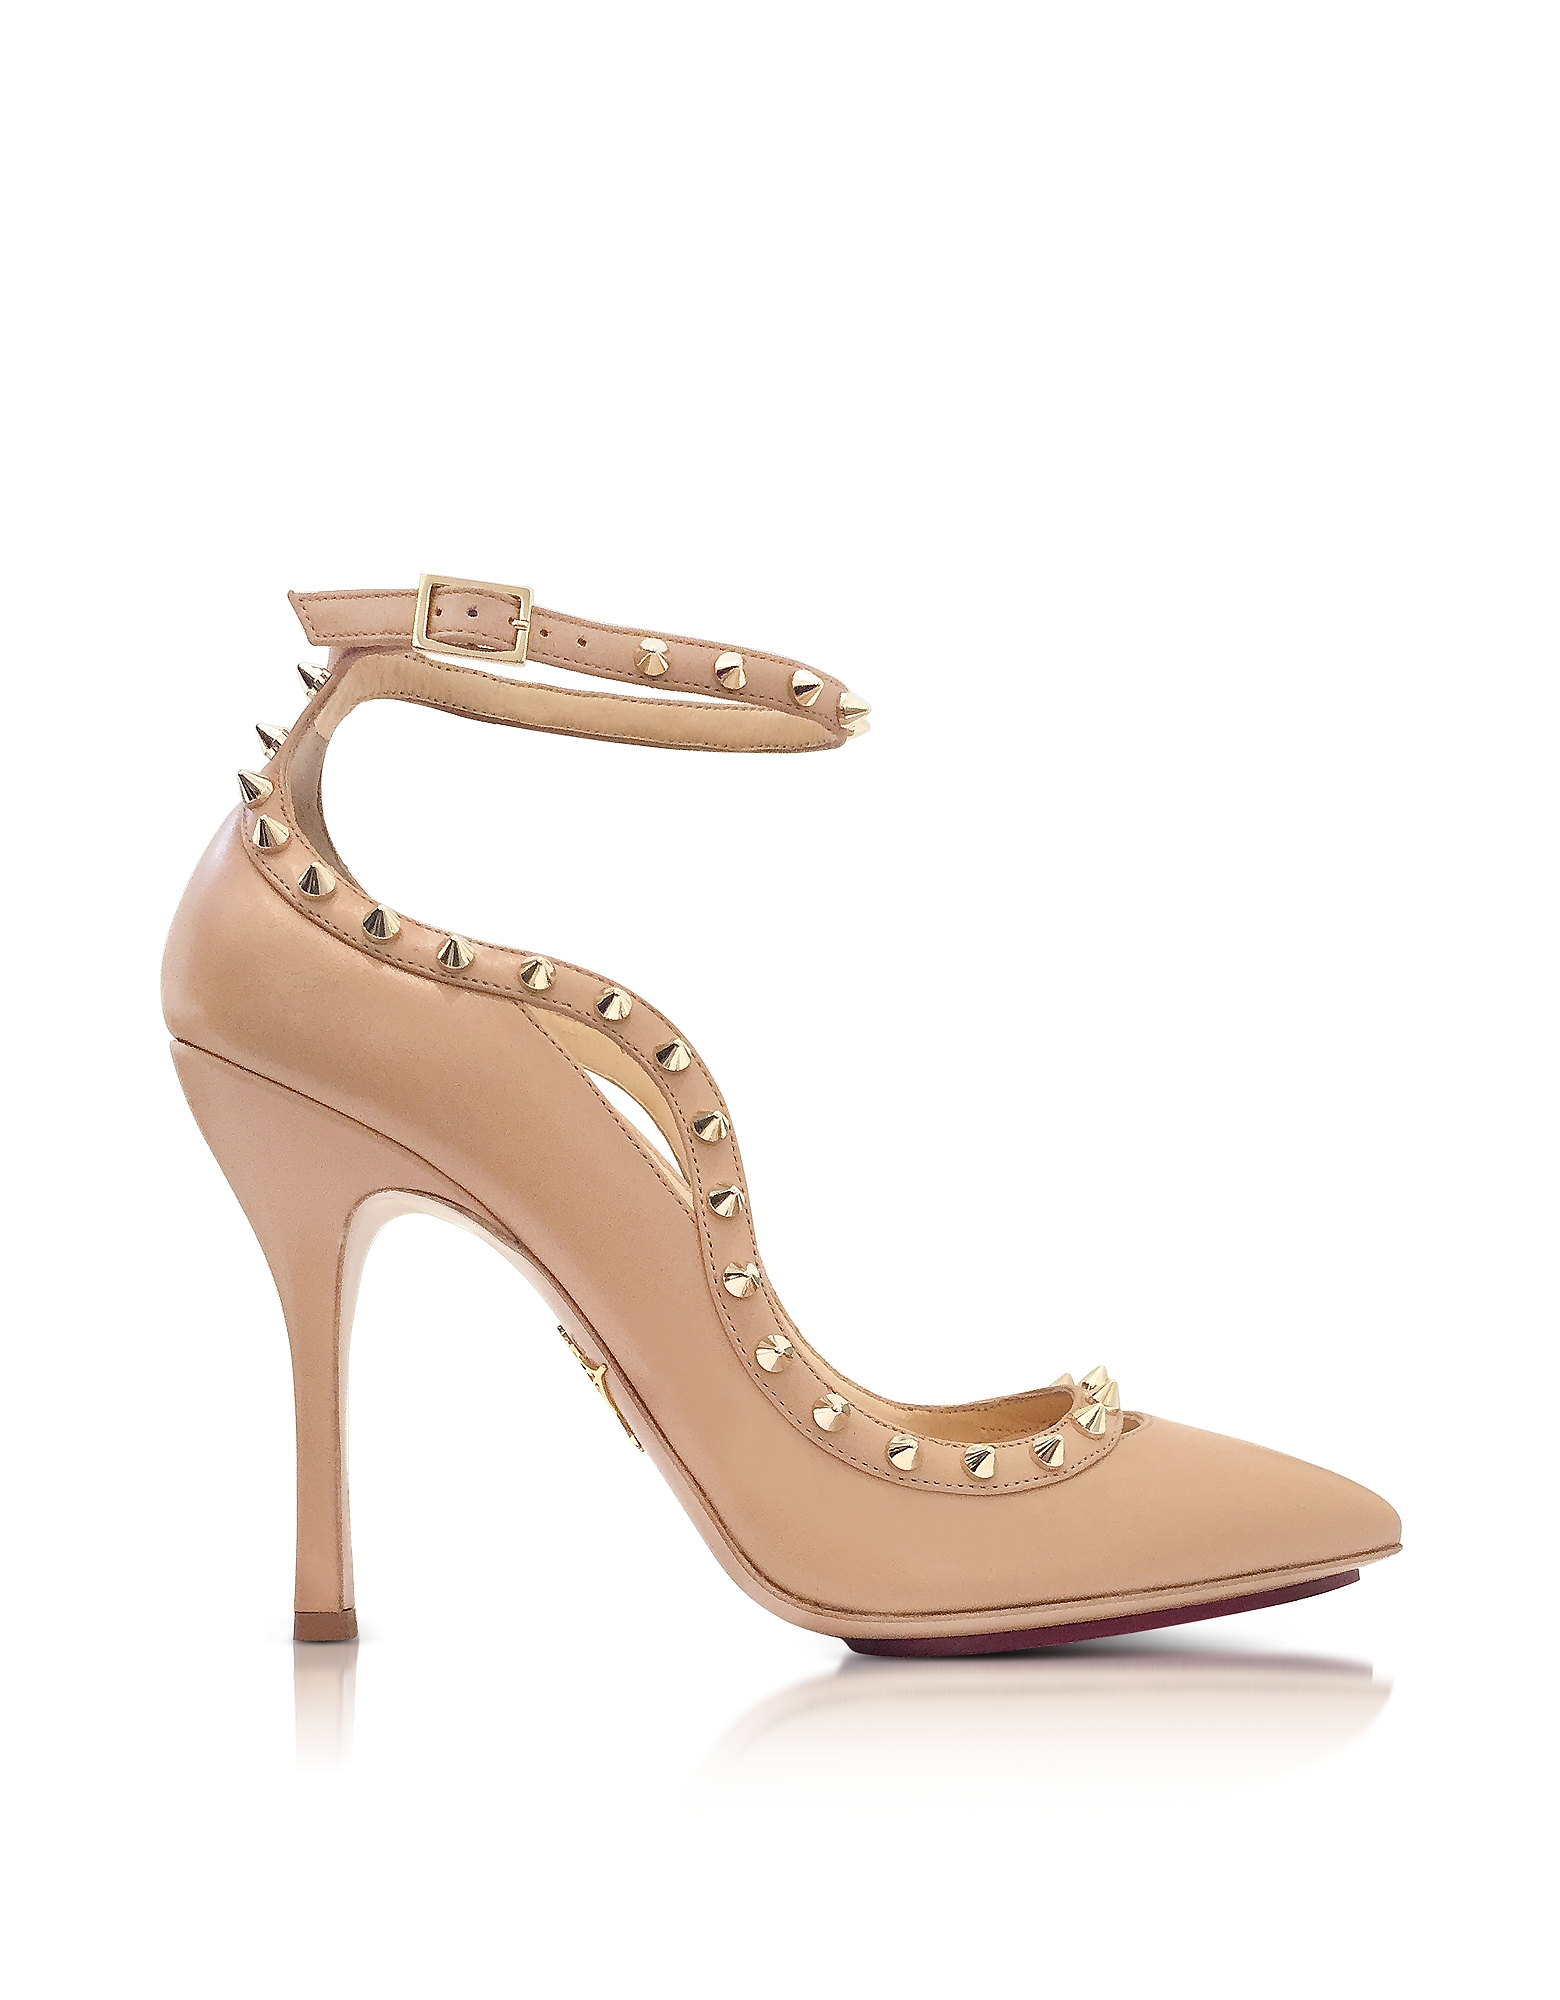 Charlotte Olympia Shoes, Pimlico Nude Leather Ankle Strap Pump